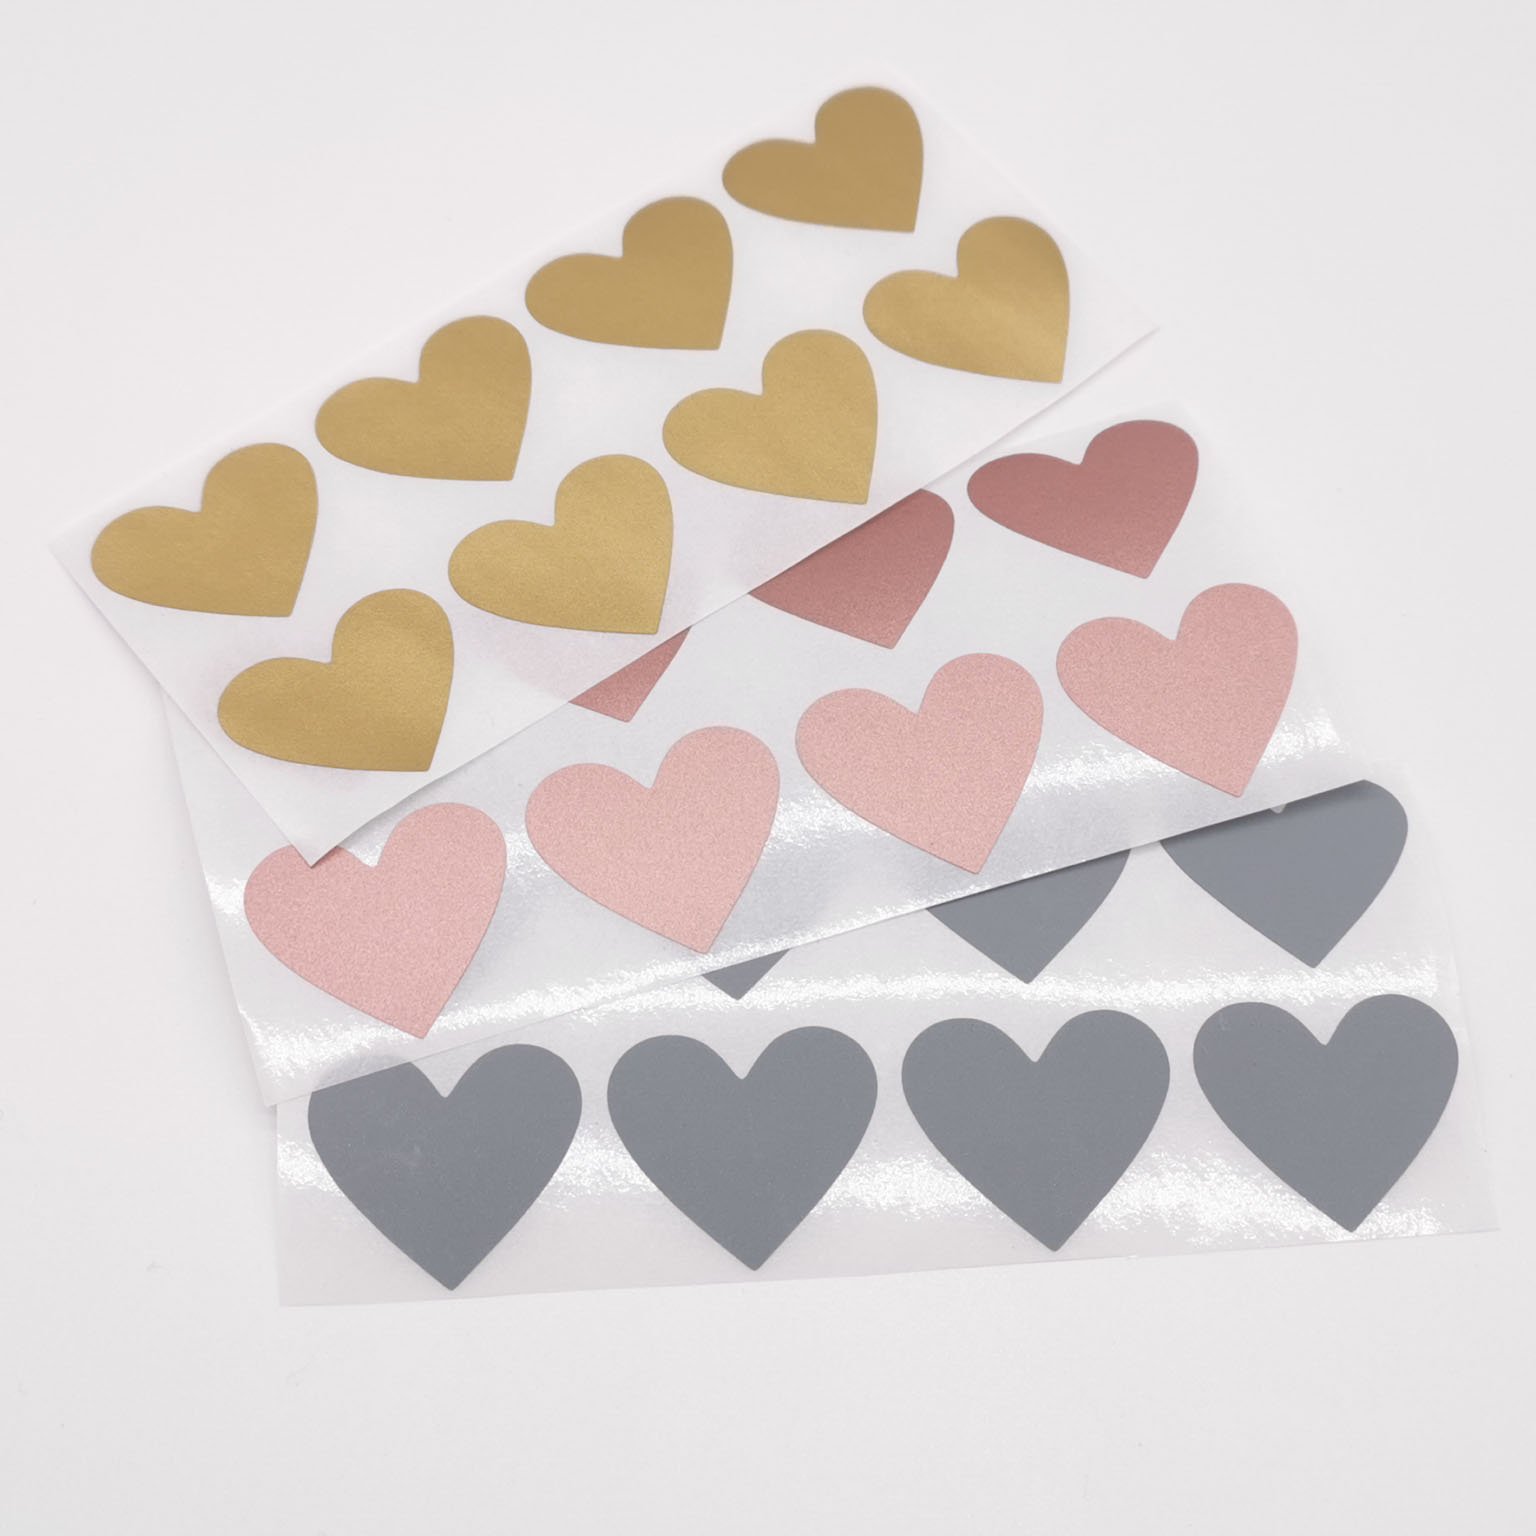 300pcs Heart Shaped Rose Gold Scratch Off Stickers Silver Labels Sticker For Party Activity Game Favors Stationery Sticker